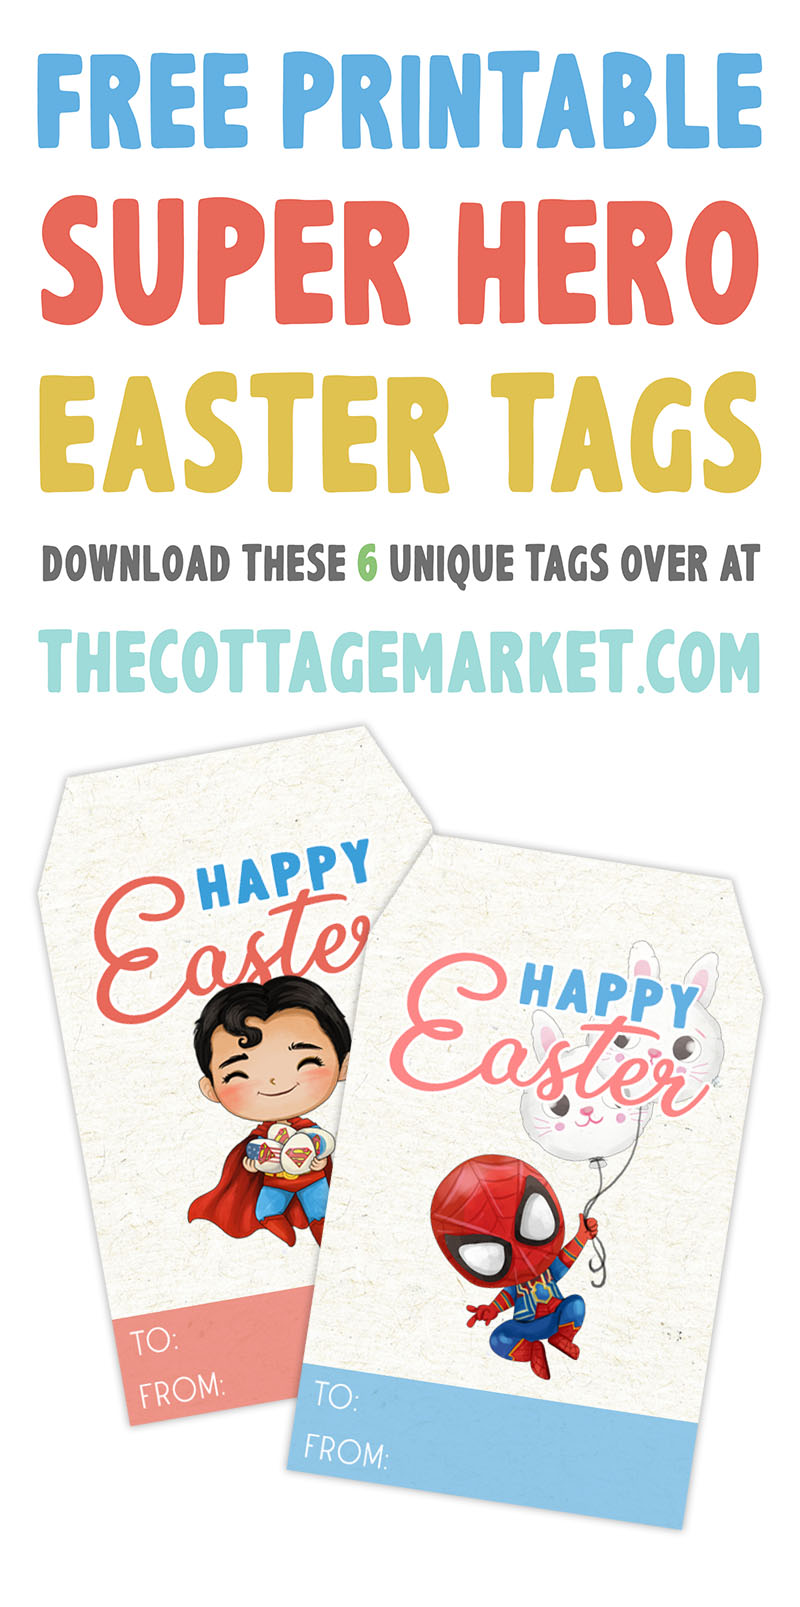 The Free Printable Children's Easter Tags are perfect for all the little ones and big ones on your Easter giving List!